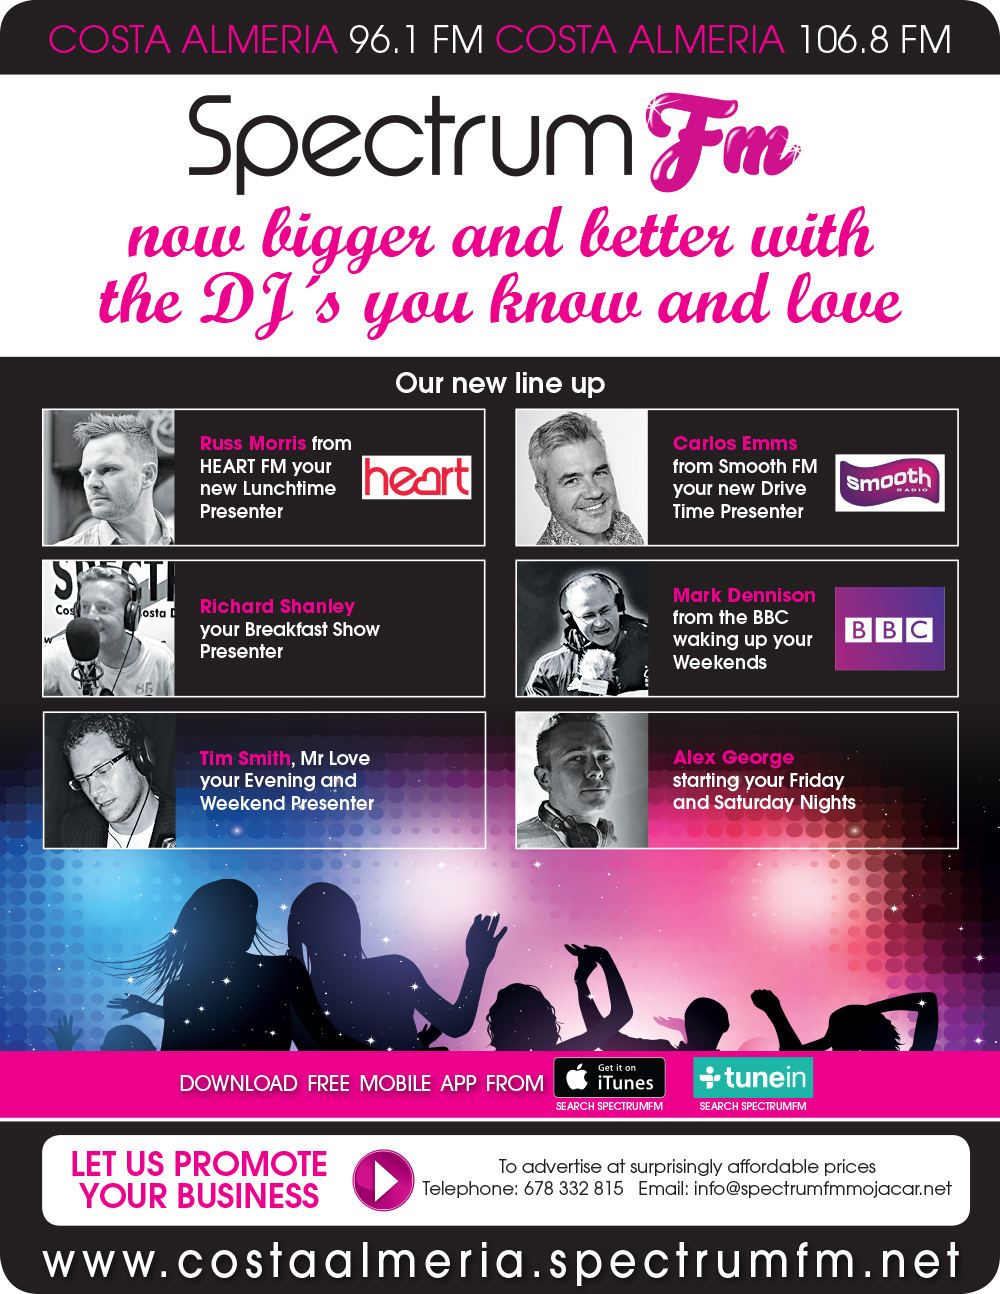 TOP UK DJ's Join Spectrum FM in an EXCITING New Line Up